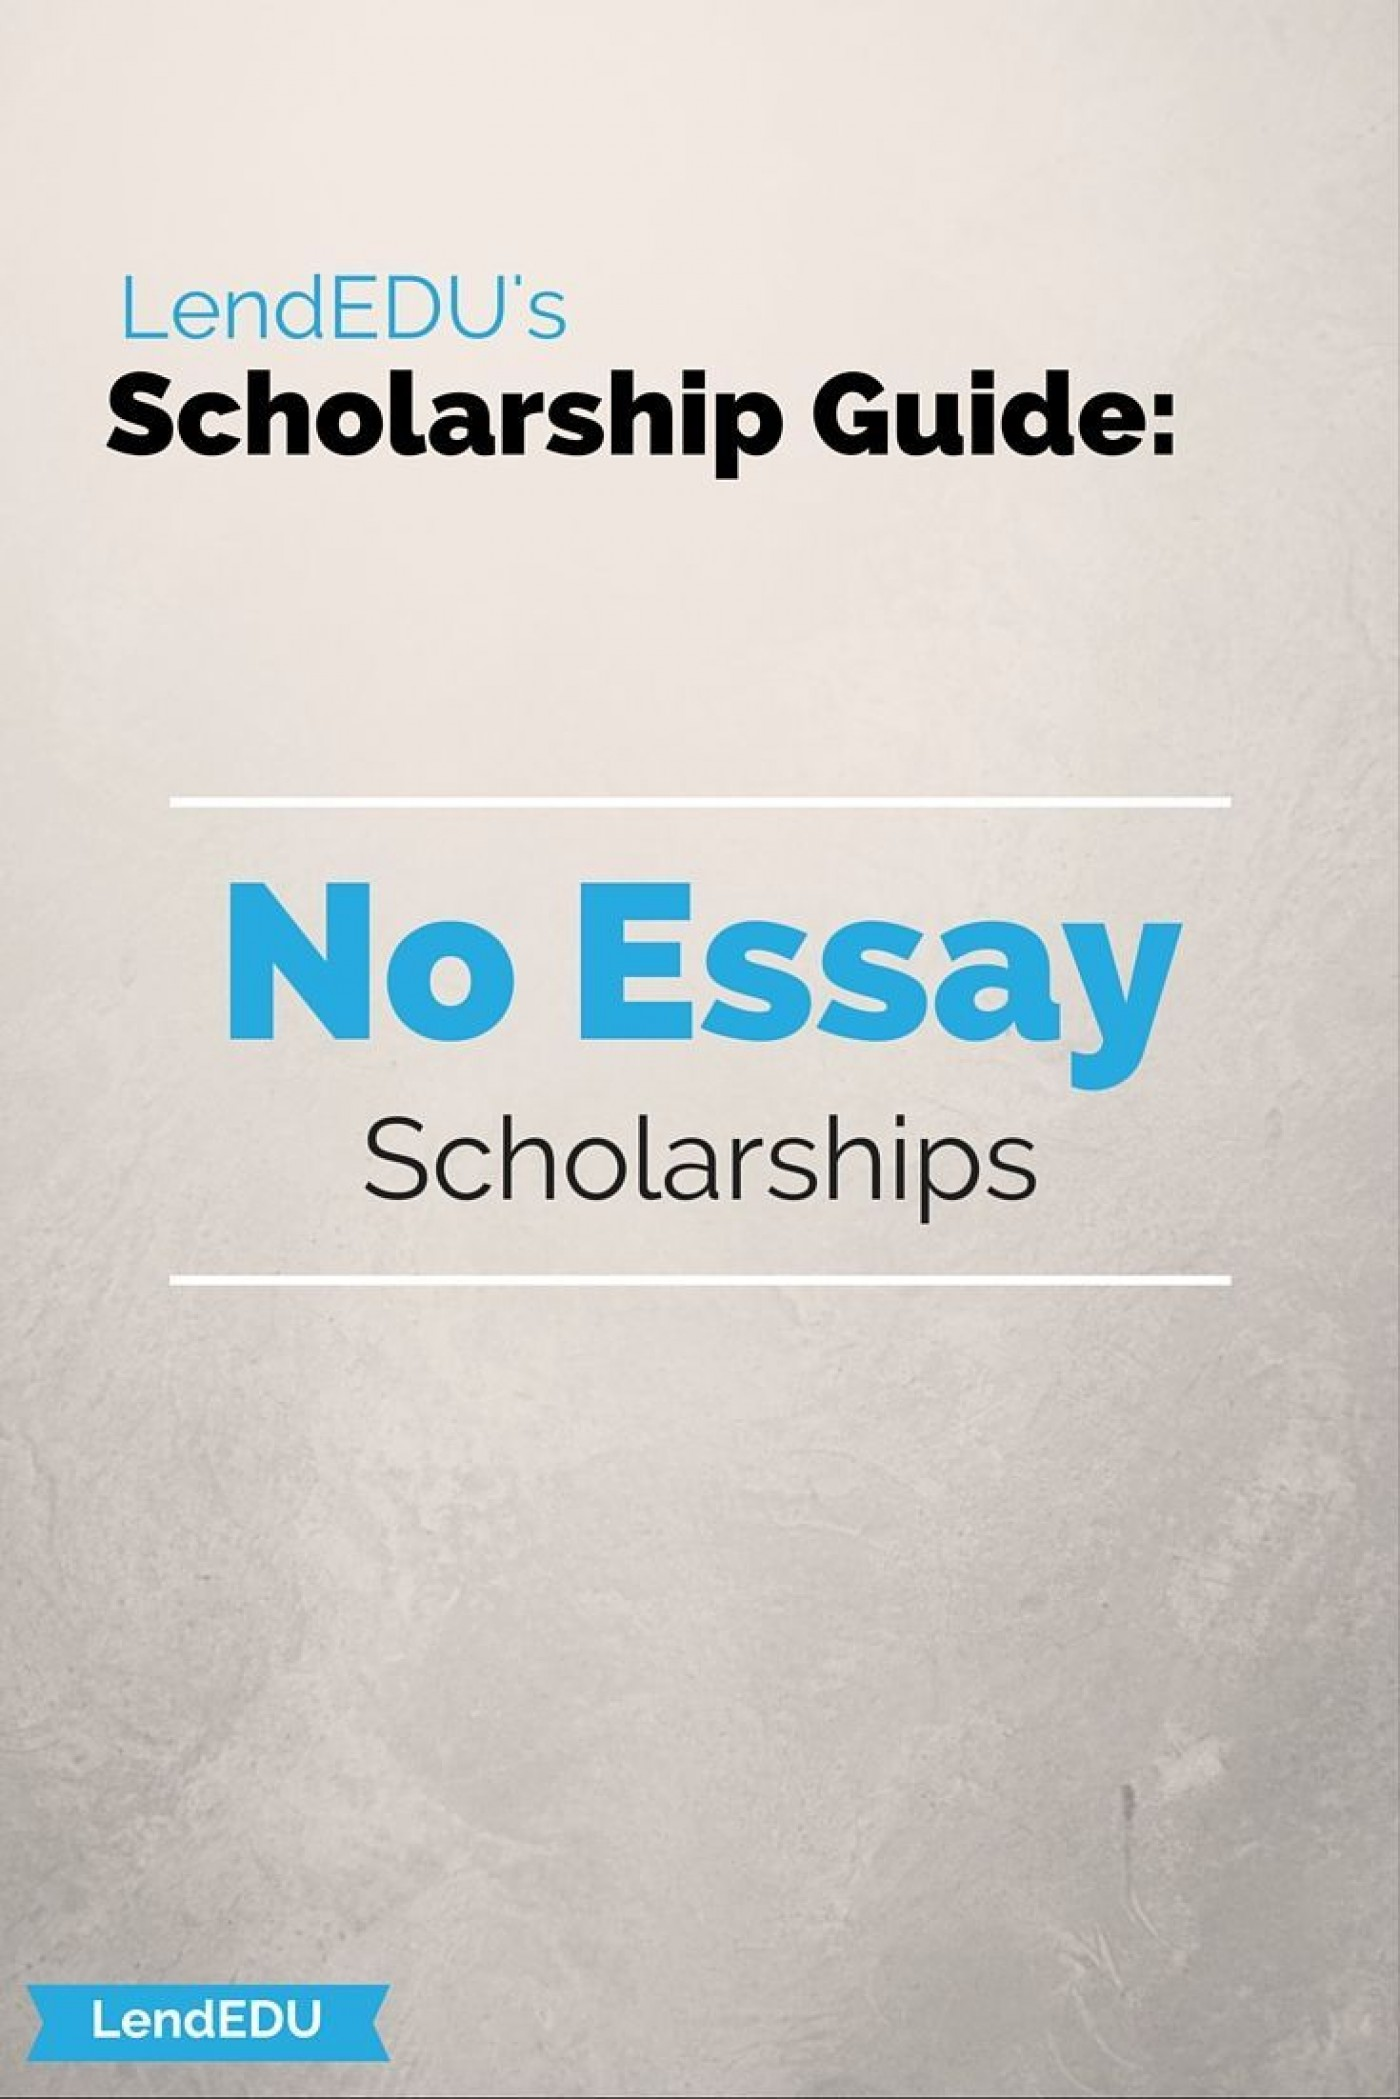 016 Essay Example No Scholarship Wondrous Scholarships For High School Seniors 2019 1400